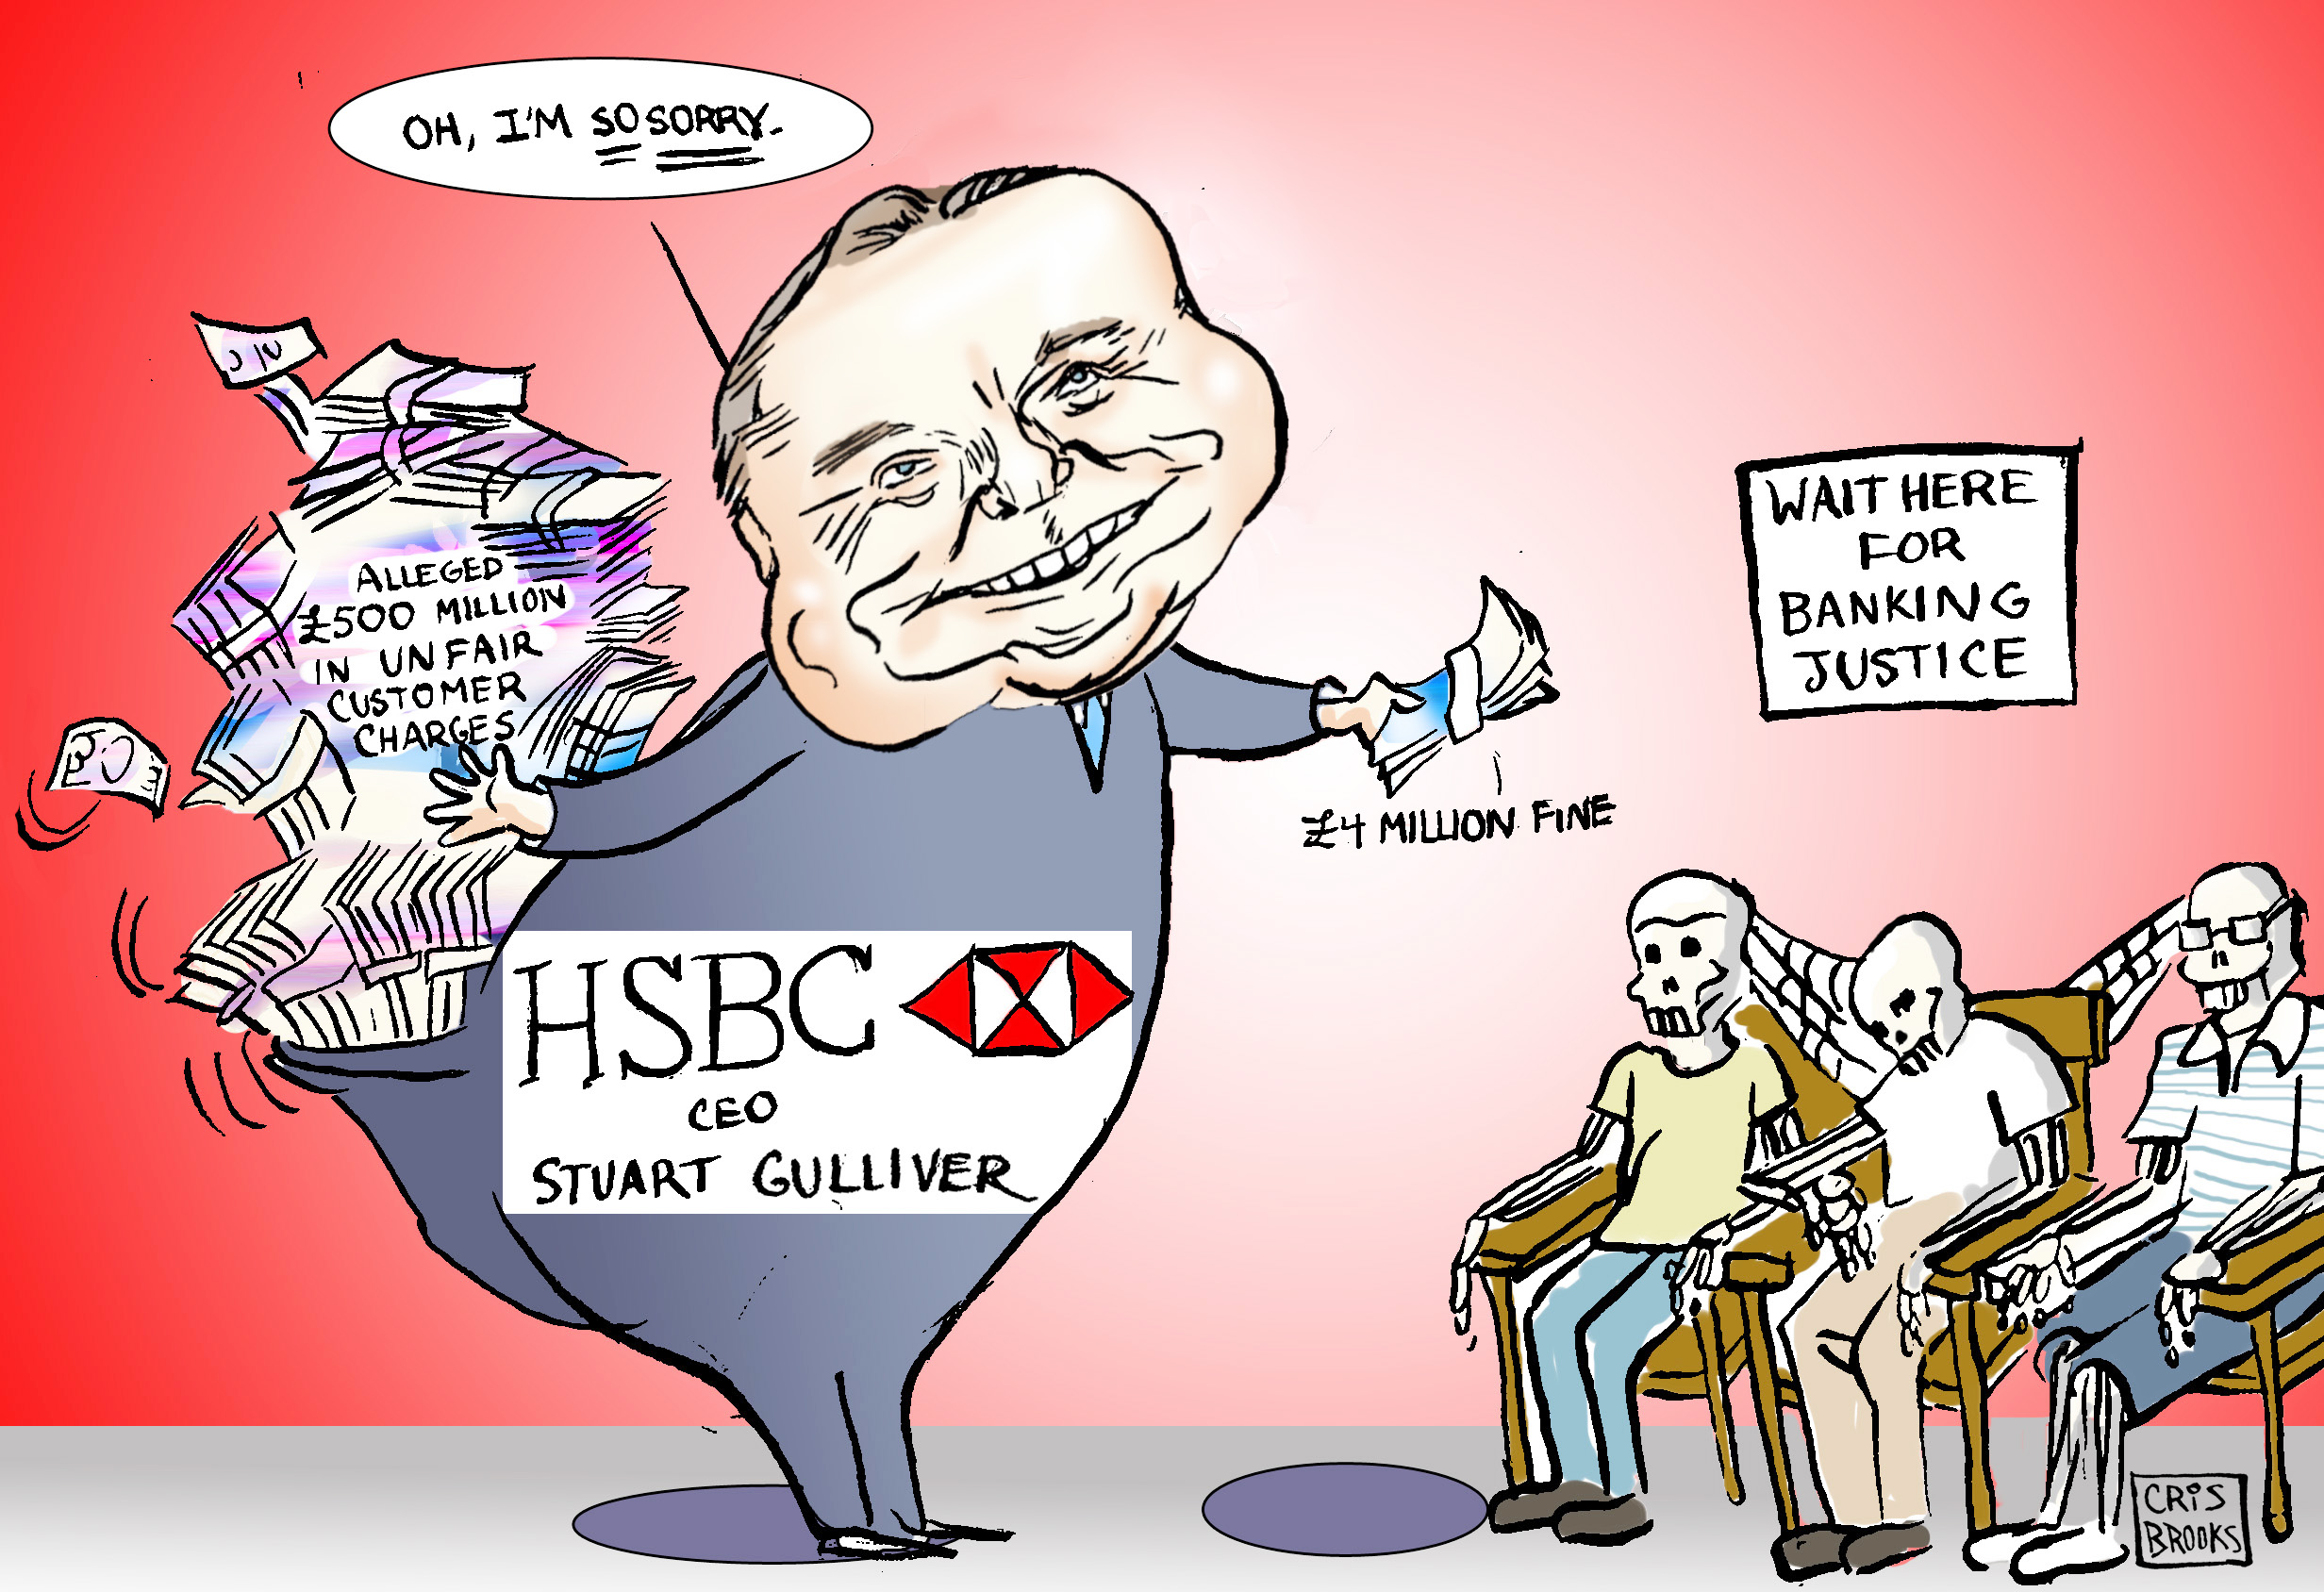 http://realmedia.press/wp-content/uploads/2017/02/HSBC-ripping-off-customers-v8-colour.jpg